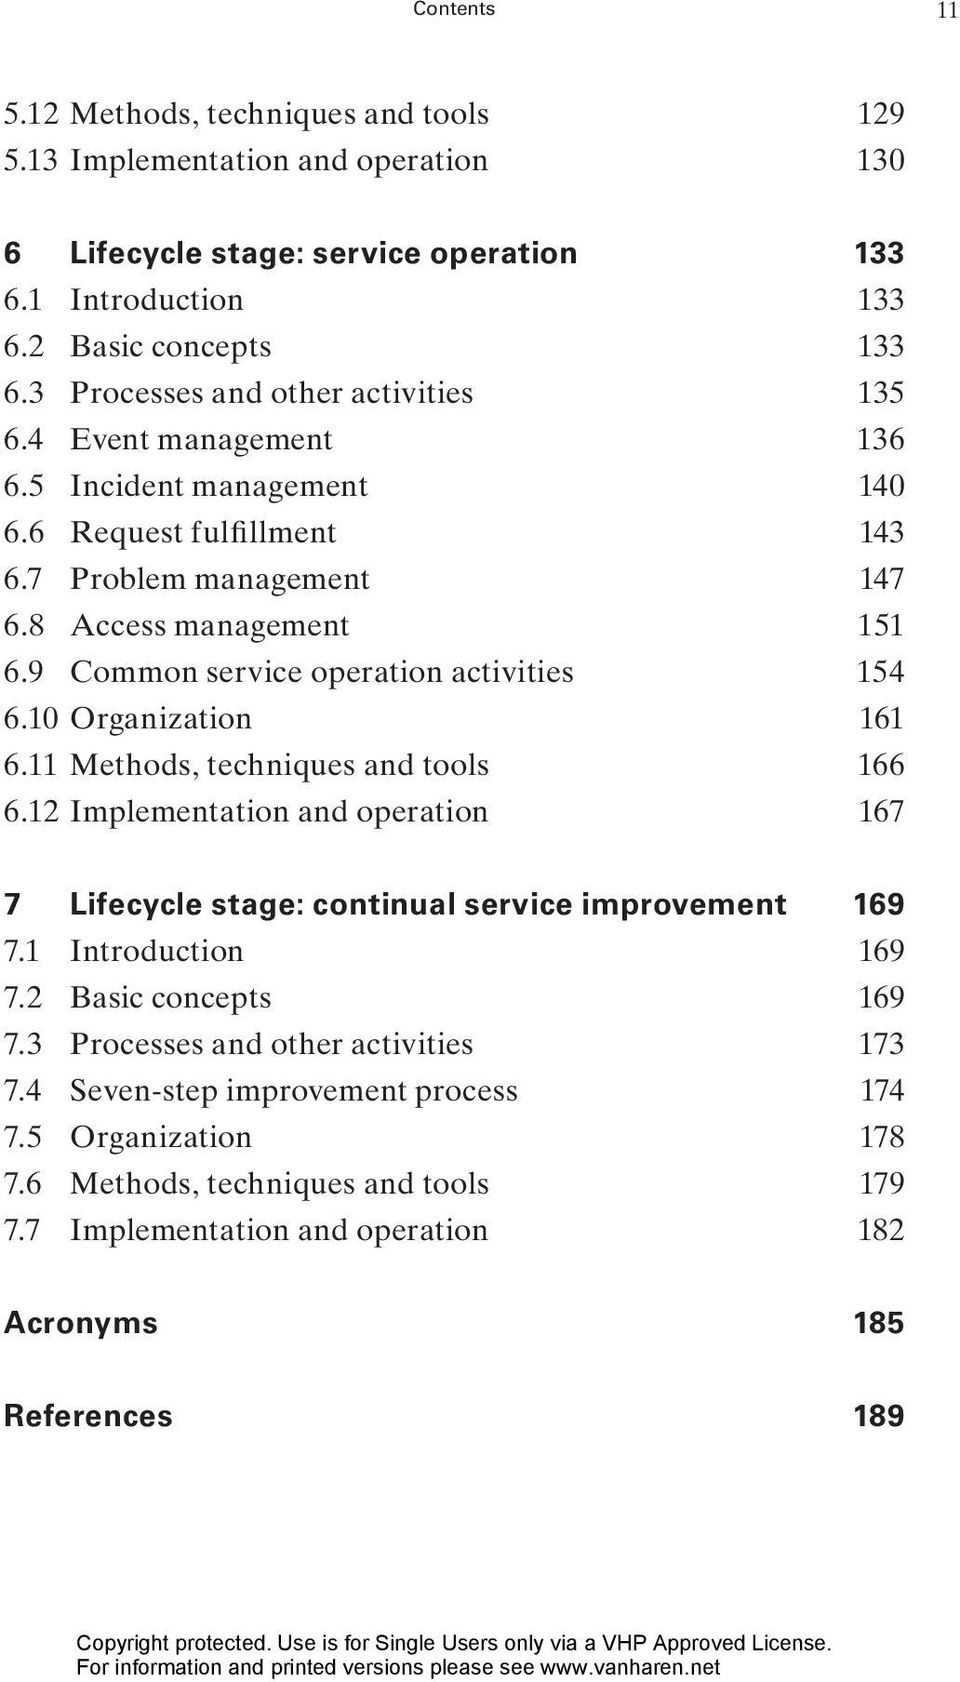 9 Common service operation activities 154 6.10 Organization 161 6.11 Methods, techniques and tools 166 6.12 Implementation and operation 167 7 Lifecycle stage: continual service improvement 169 7.